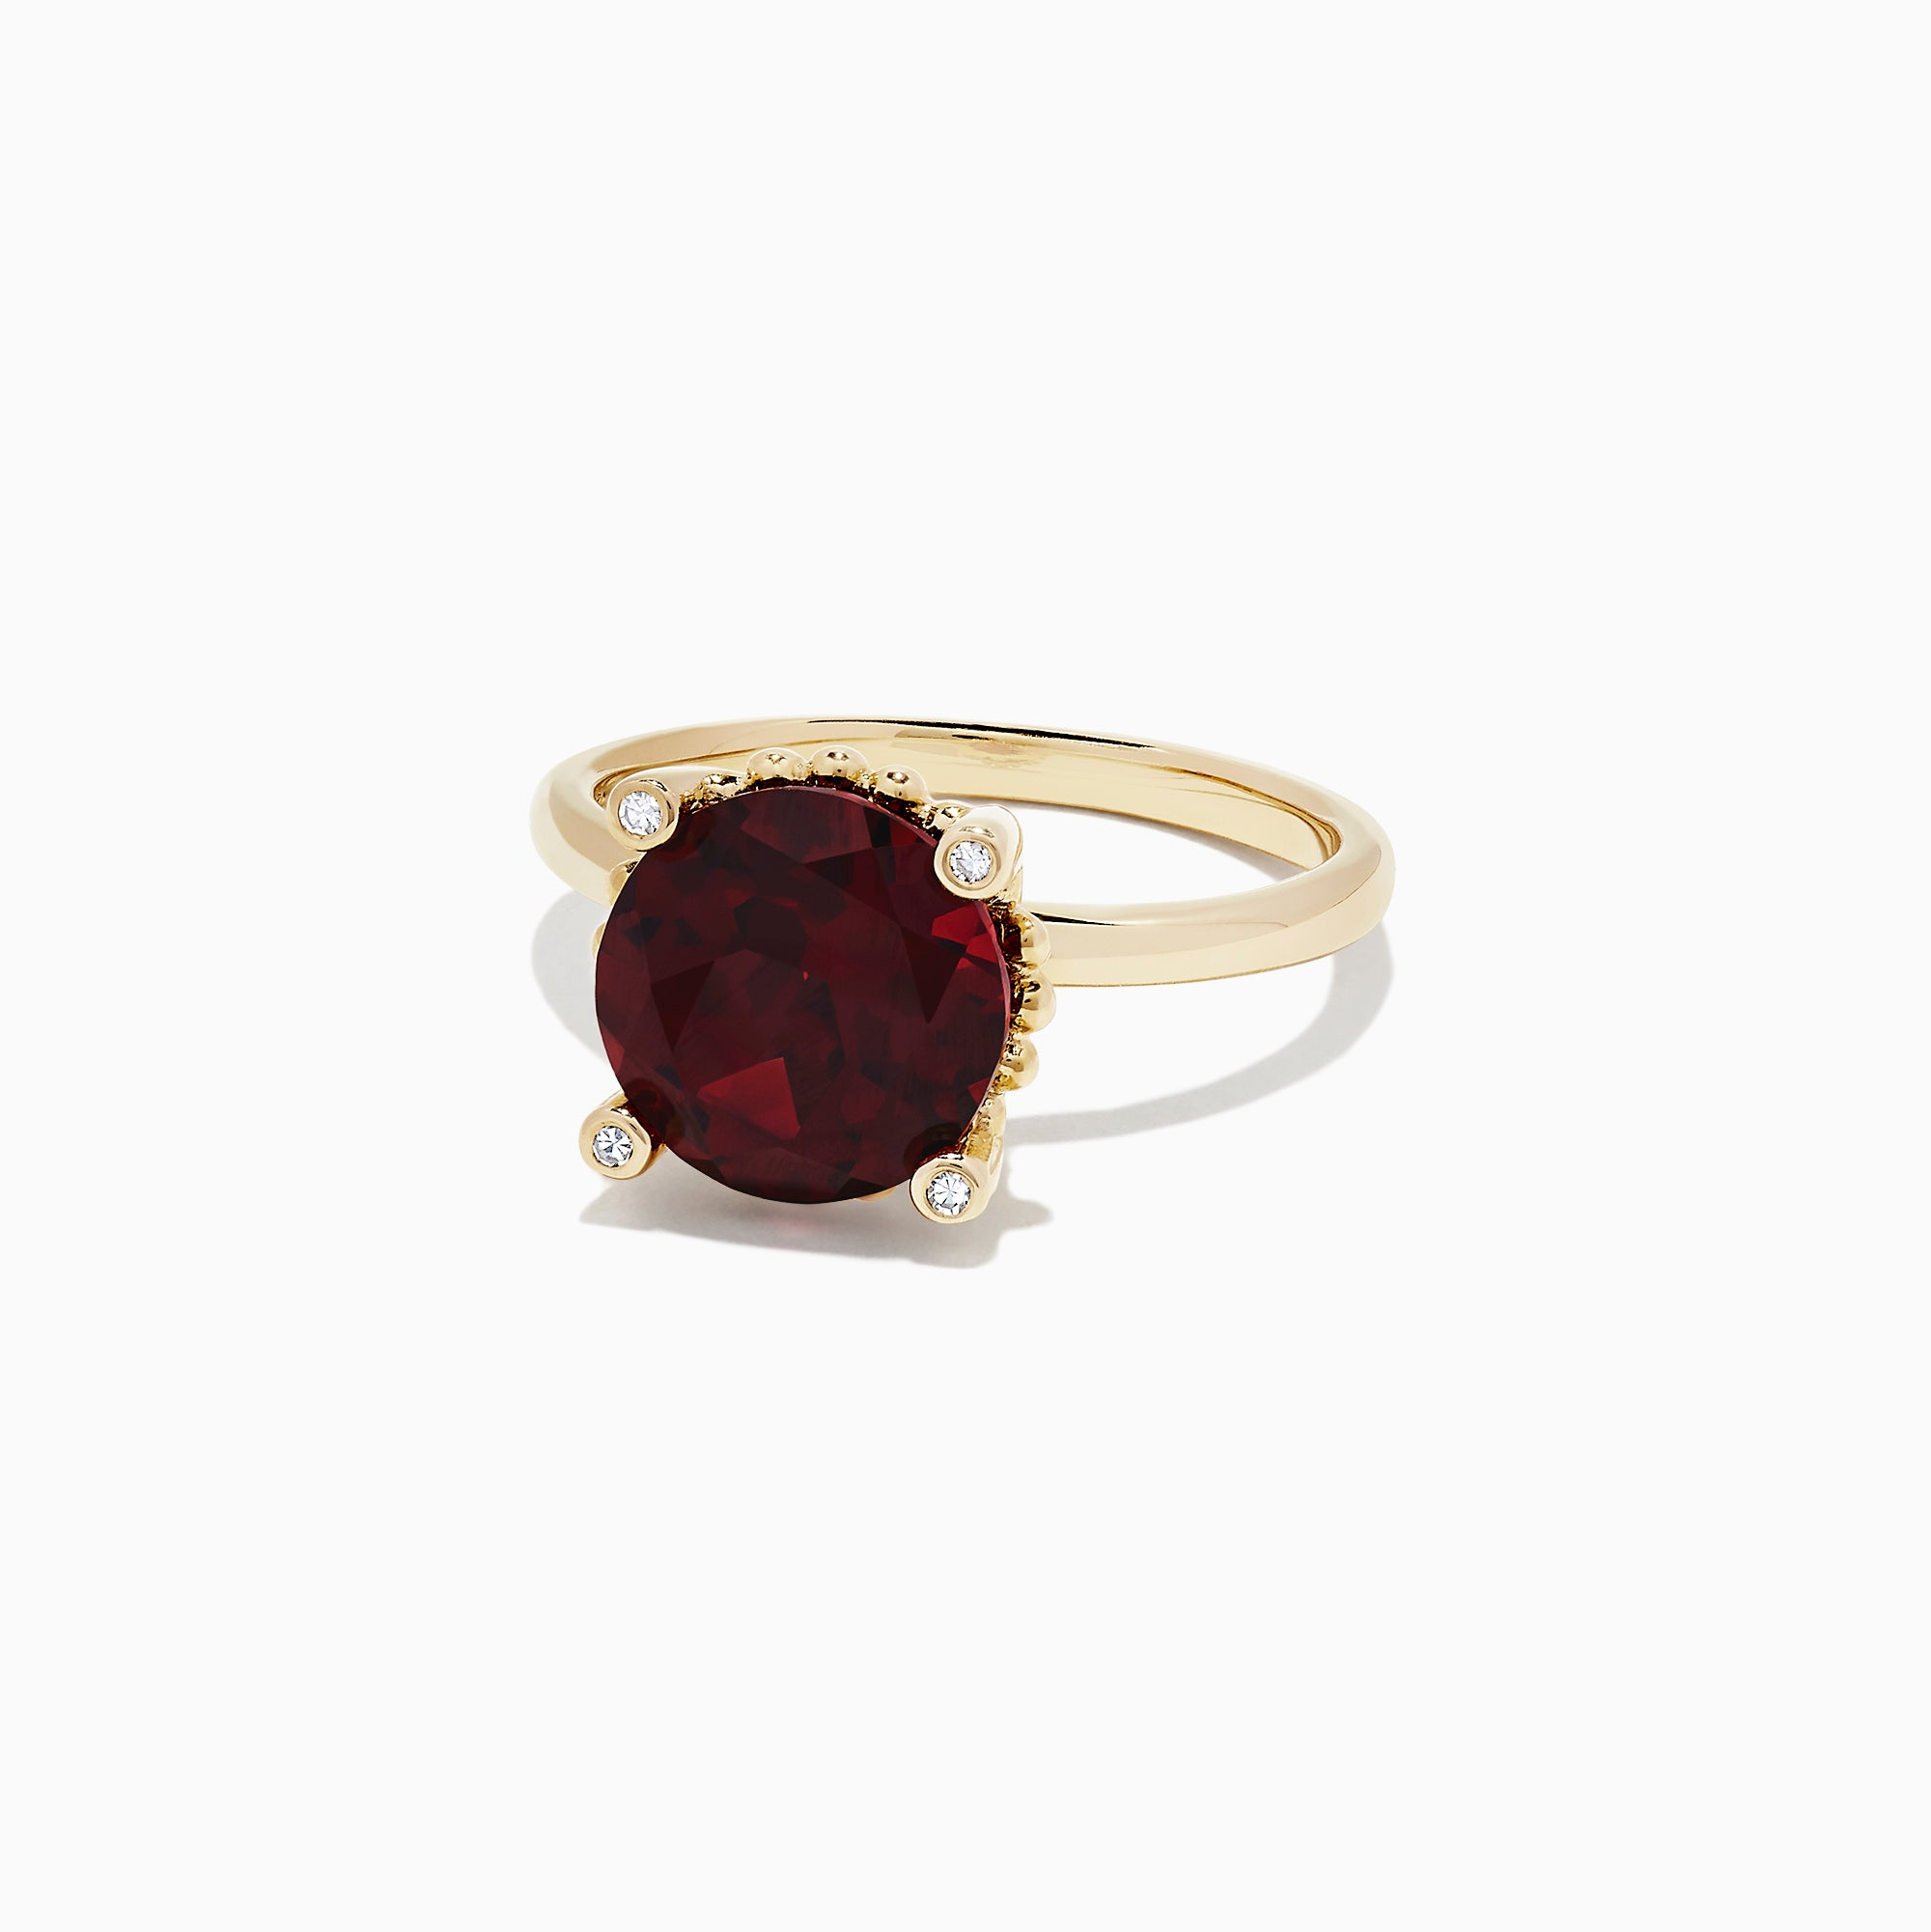 Effy Bordeaux 14K Yellow Gold Garnet and Diamond Ring, 5.67 TCW